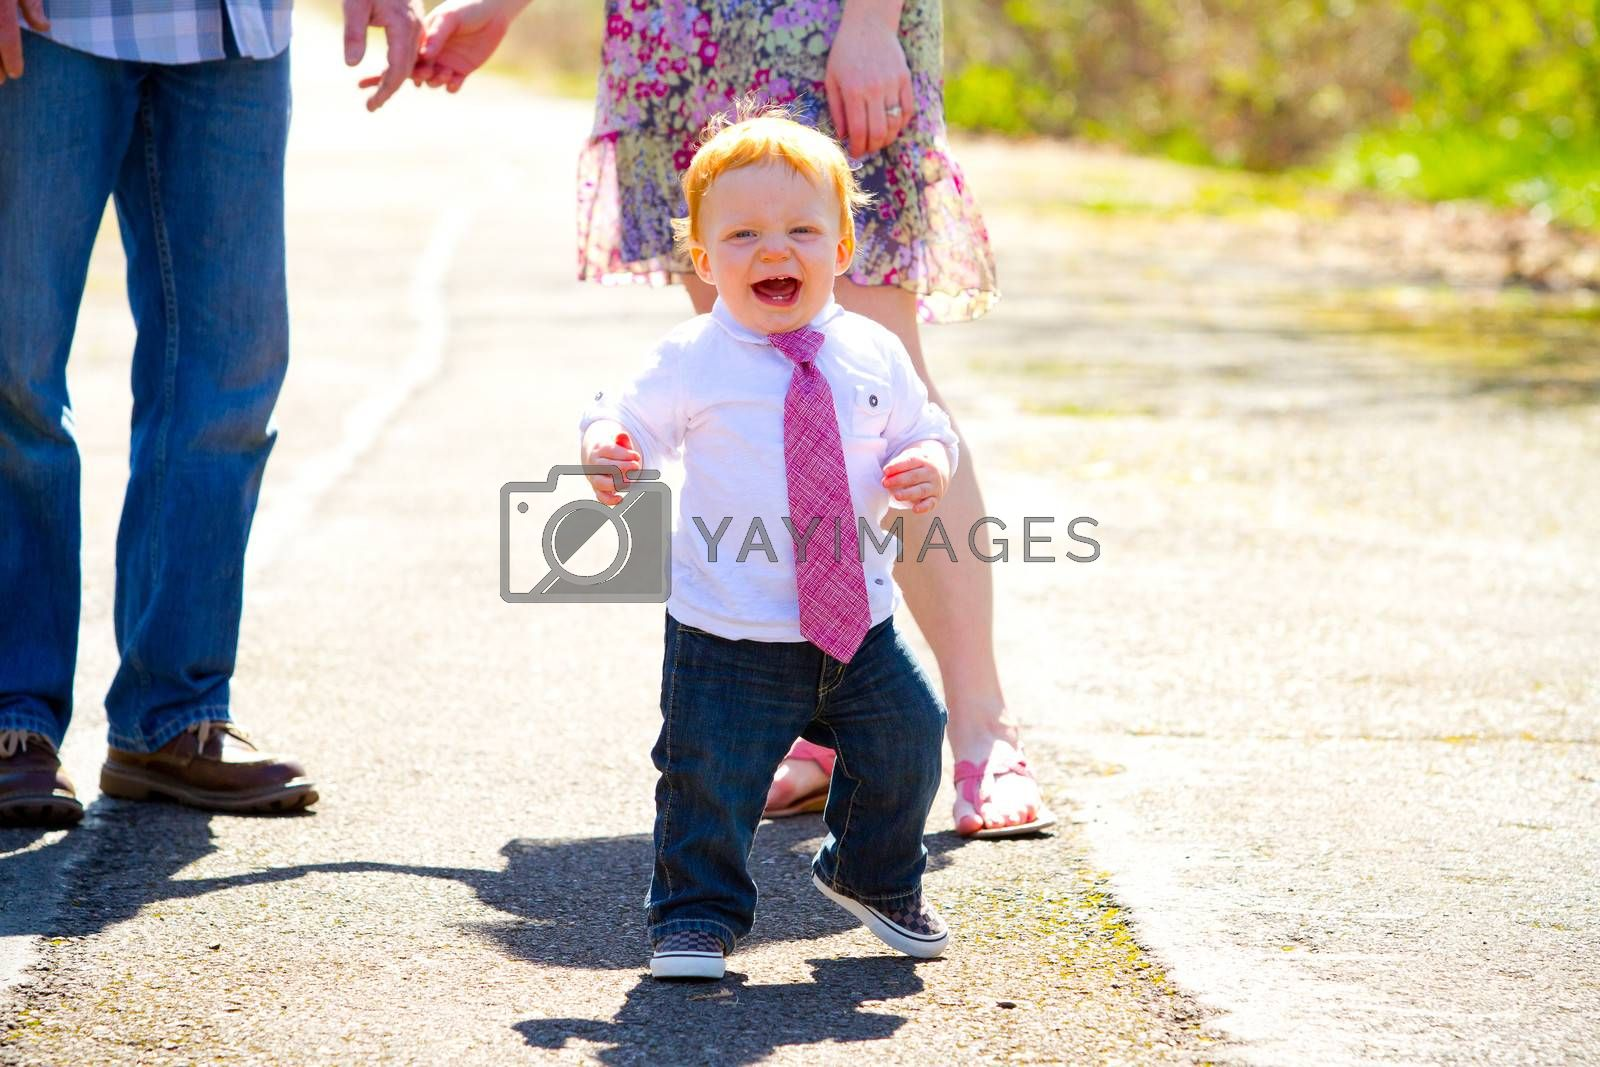 A baby boy runs away from his parents during an outdoor photo shoot with the family.